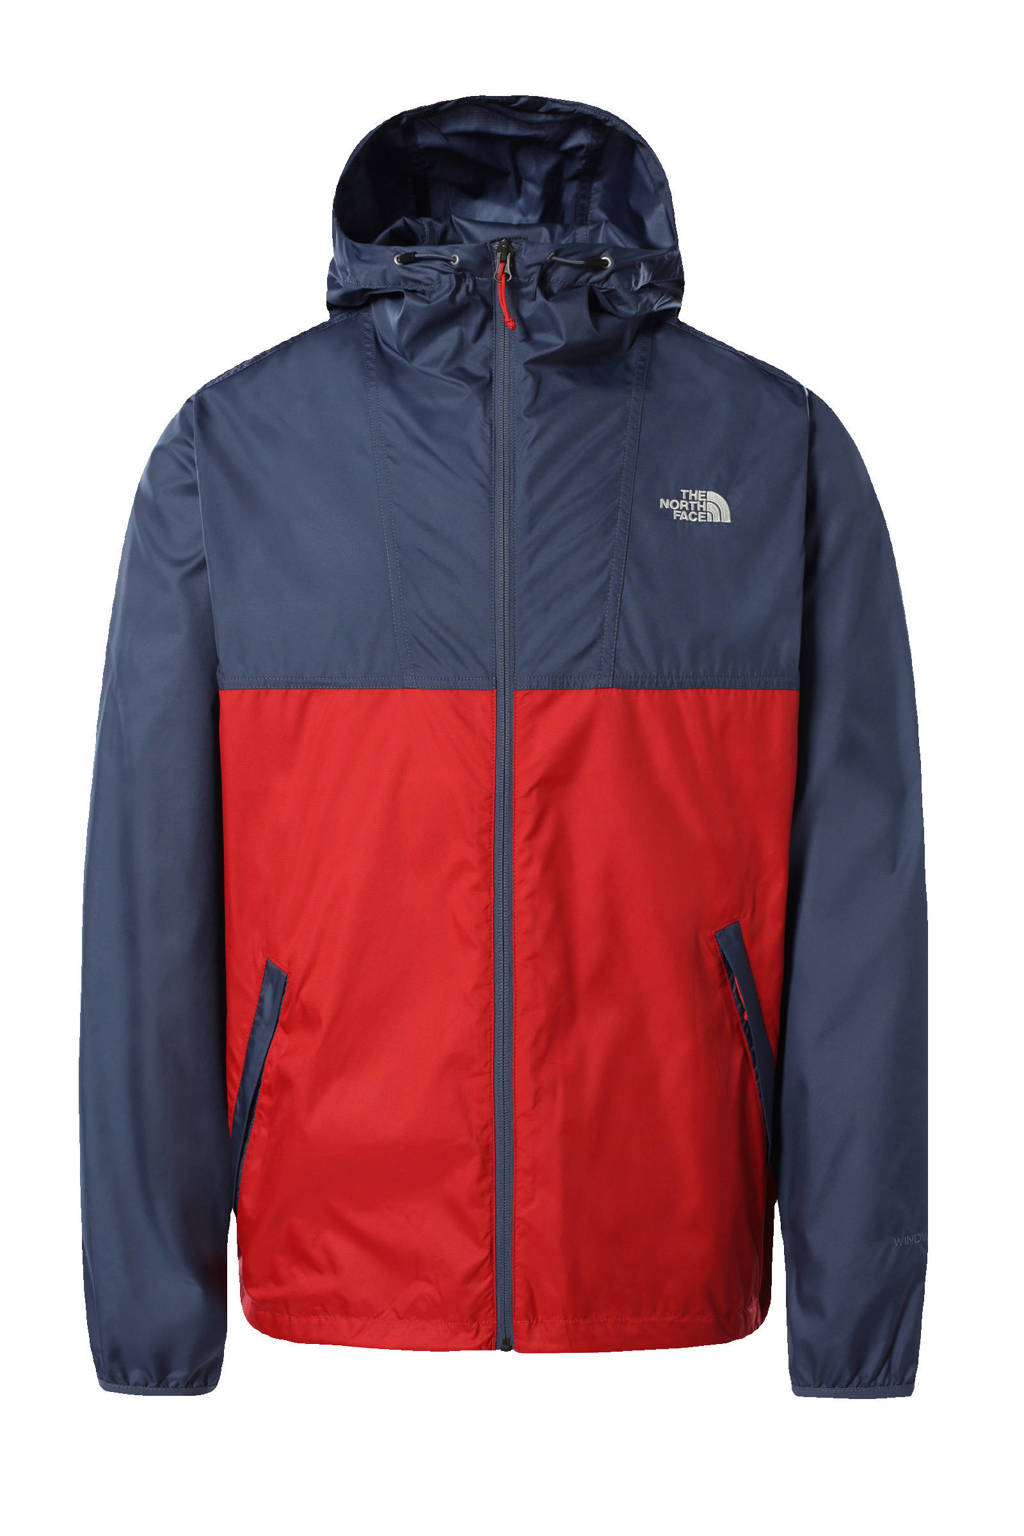 The North Face jack Cyclone donkerblauw/rood, Donkerblauw/rood